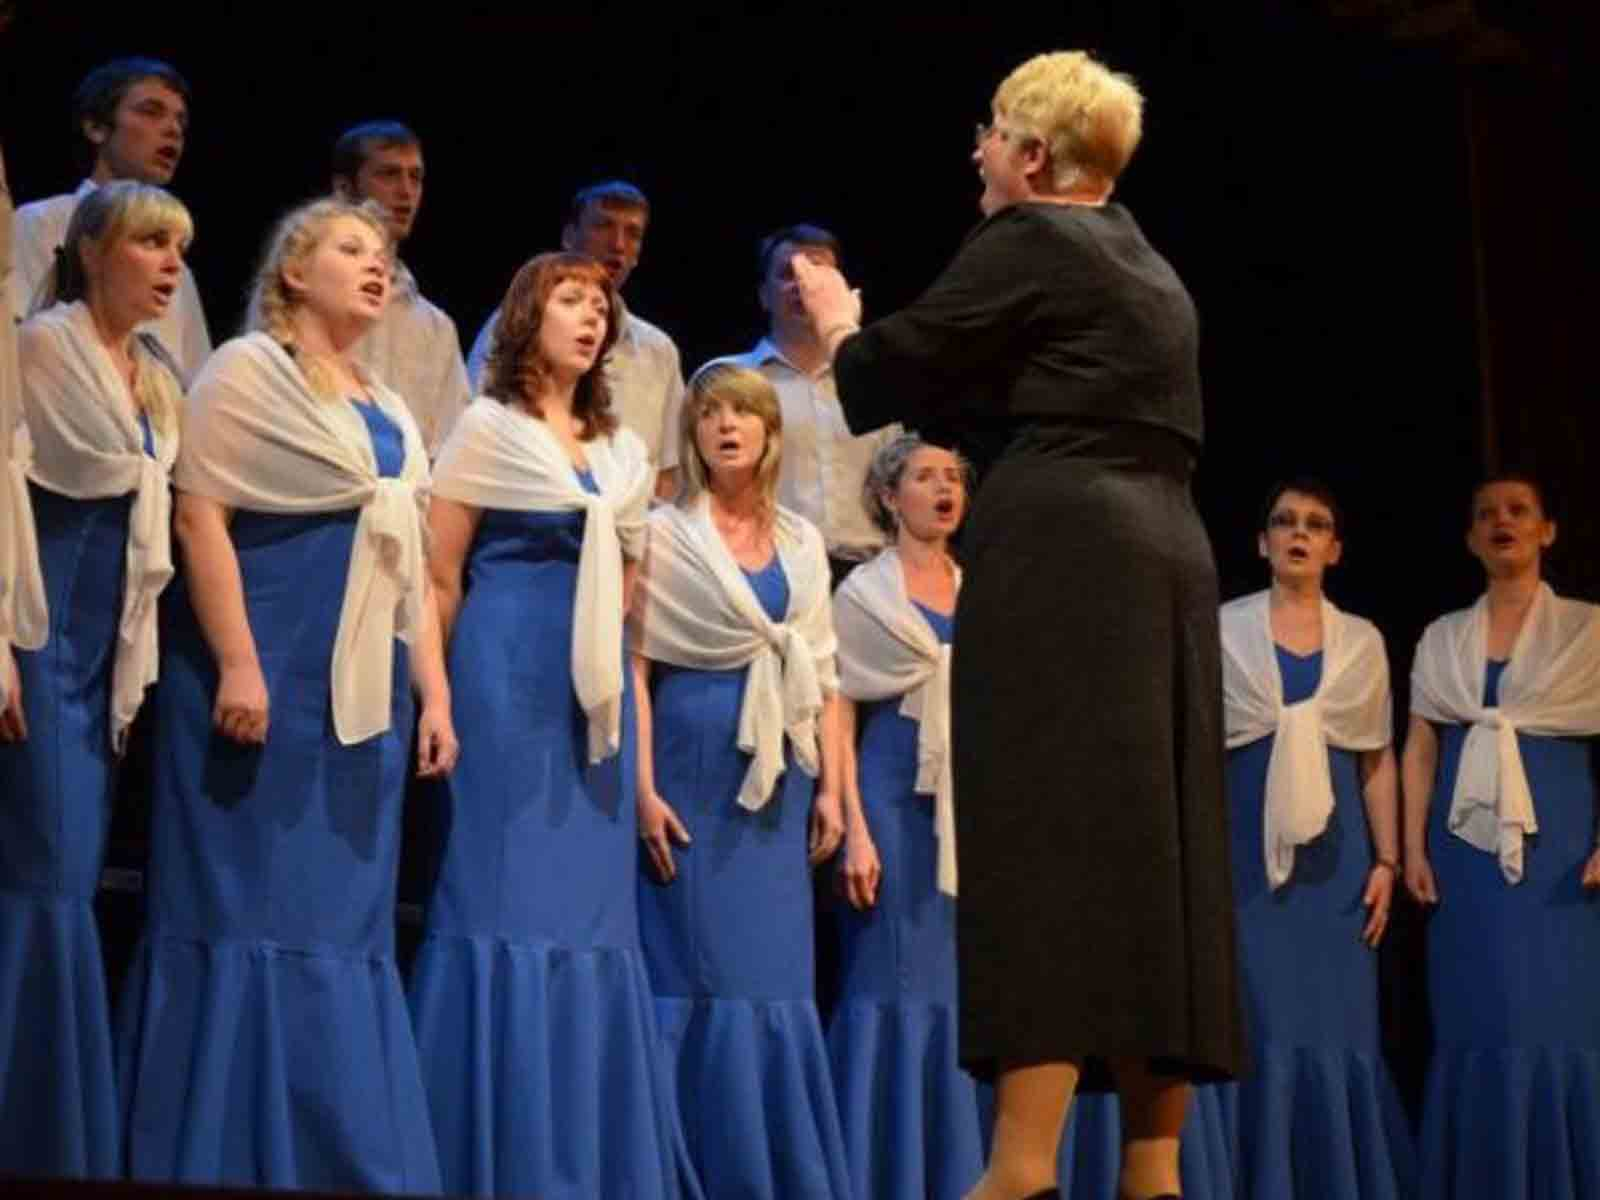 9TH INTERNATIONAL CHOIR AND ORCHESTRA FESTIVAL IN CALELLA ON